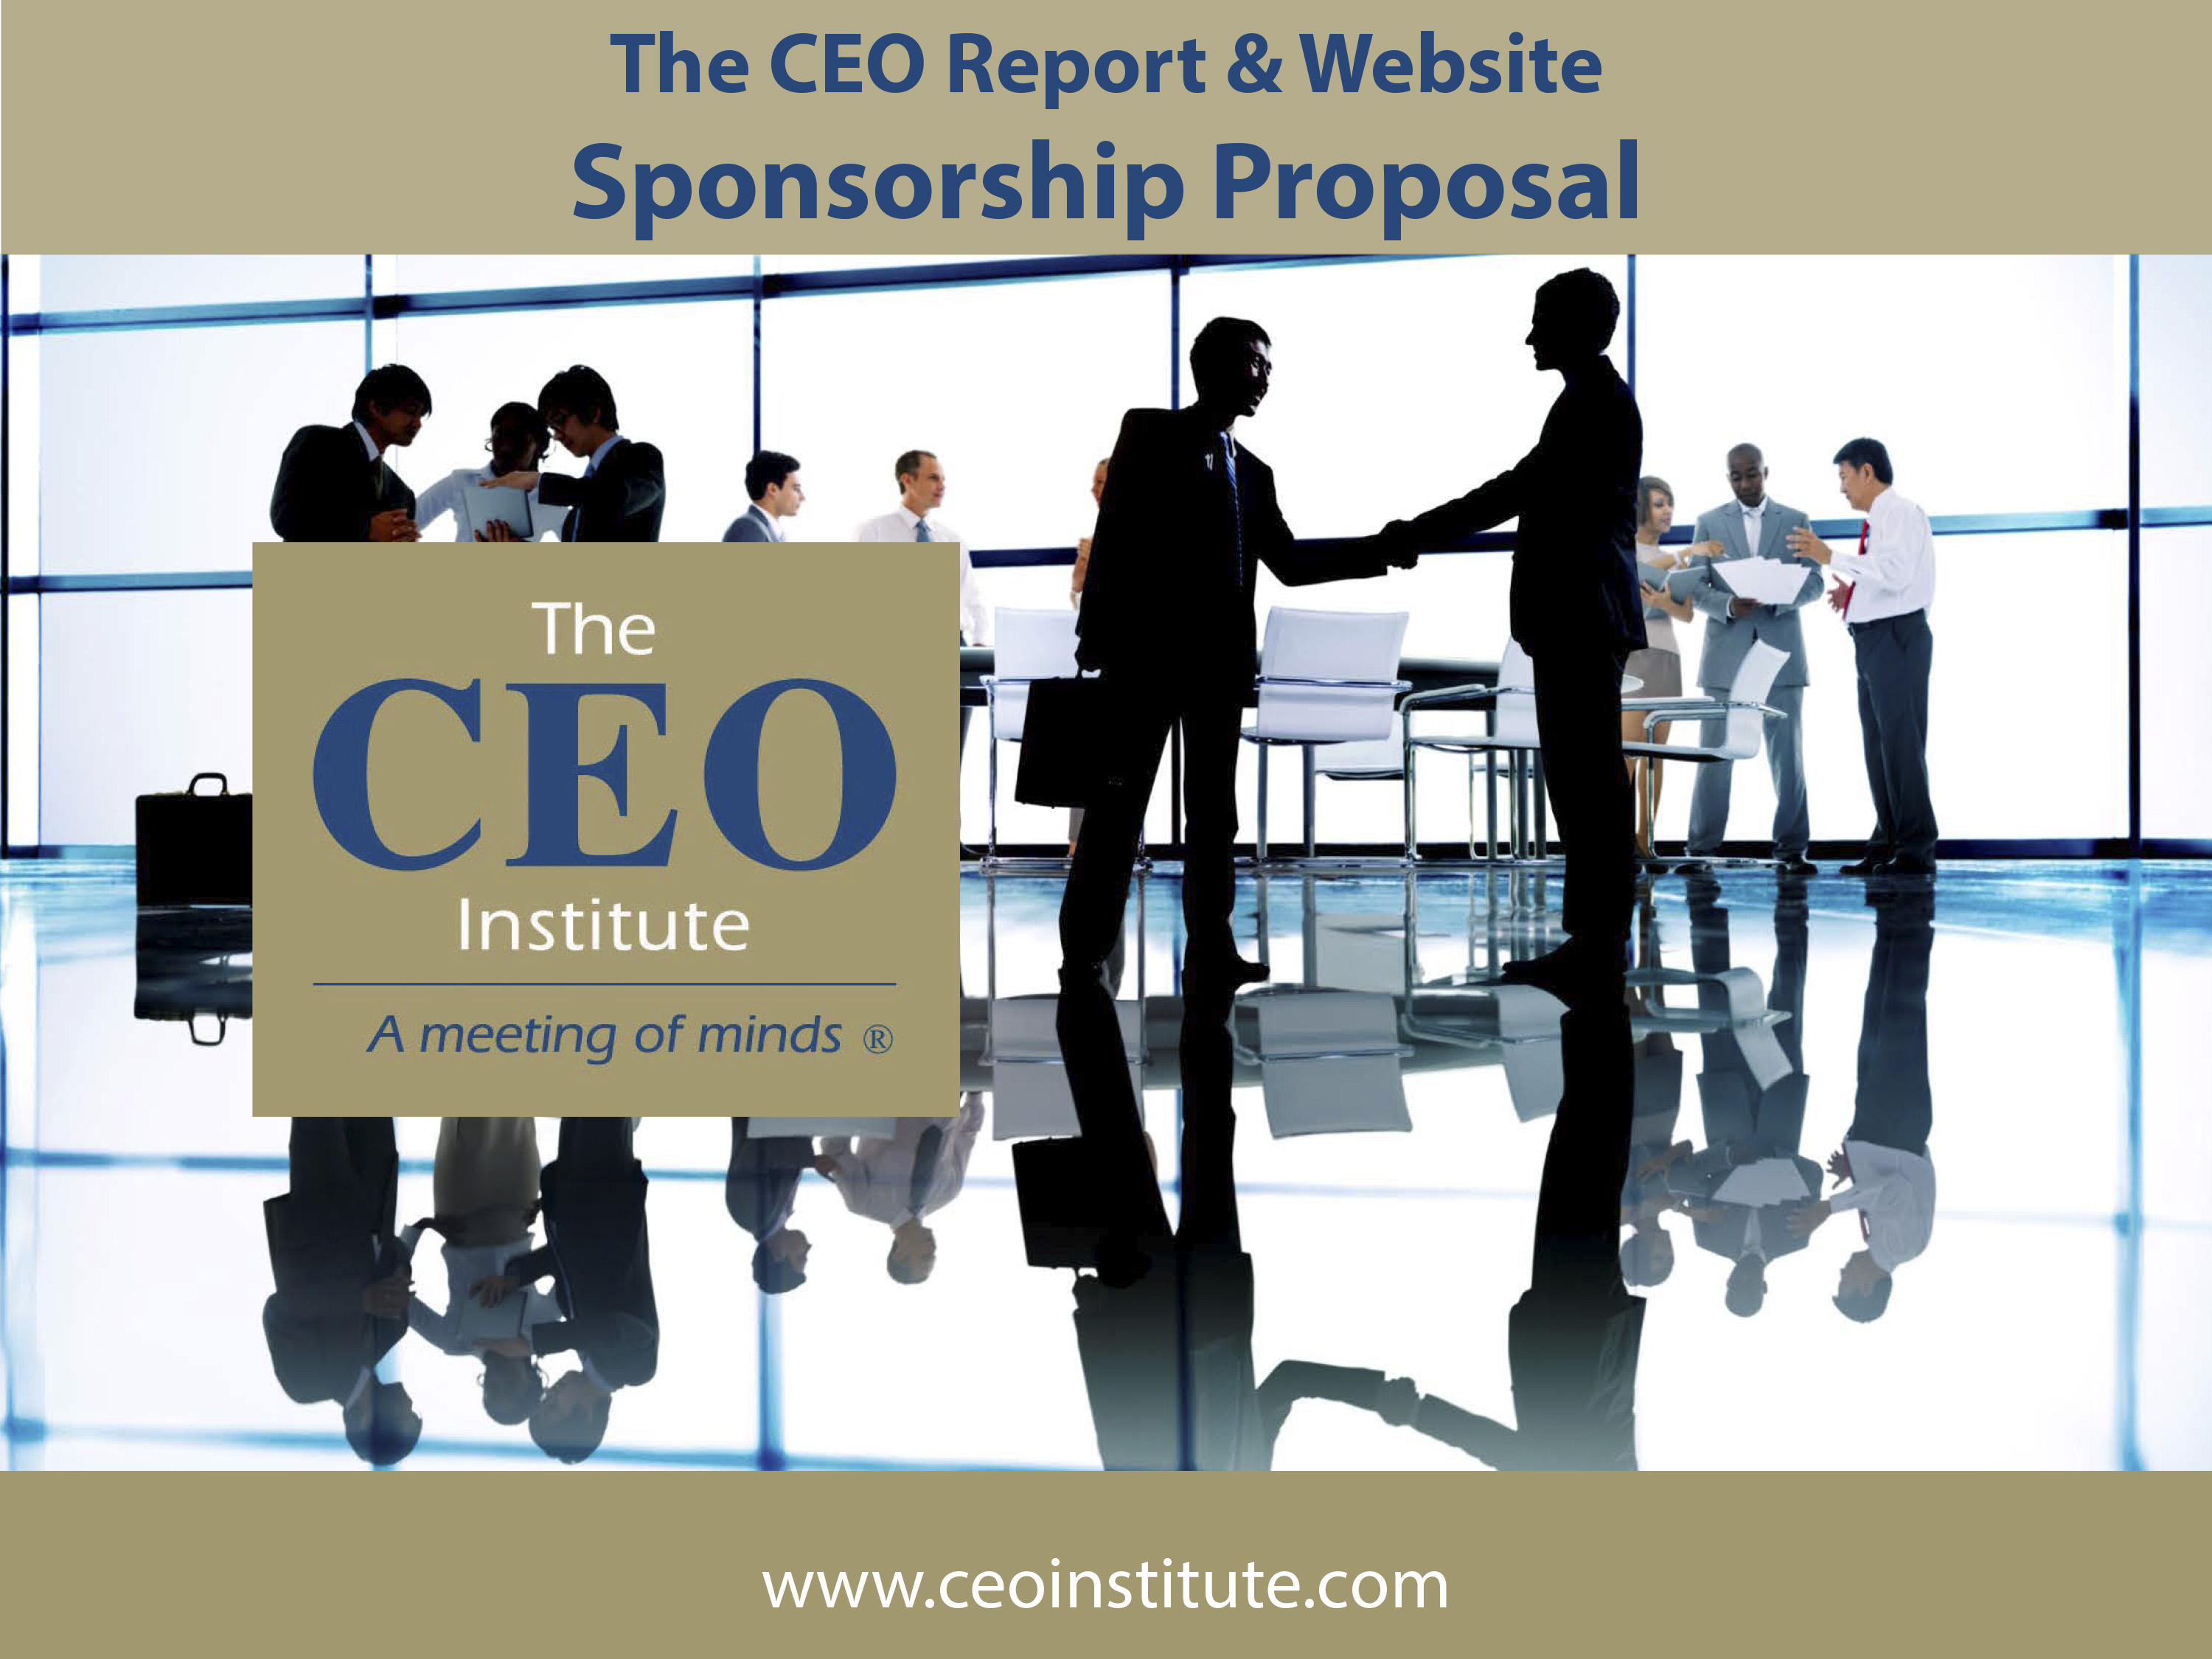 The CEO Report Magazine & Website Sponsorship